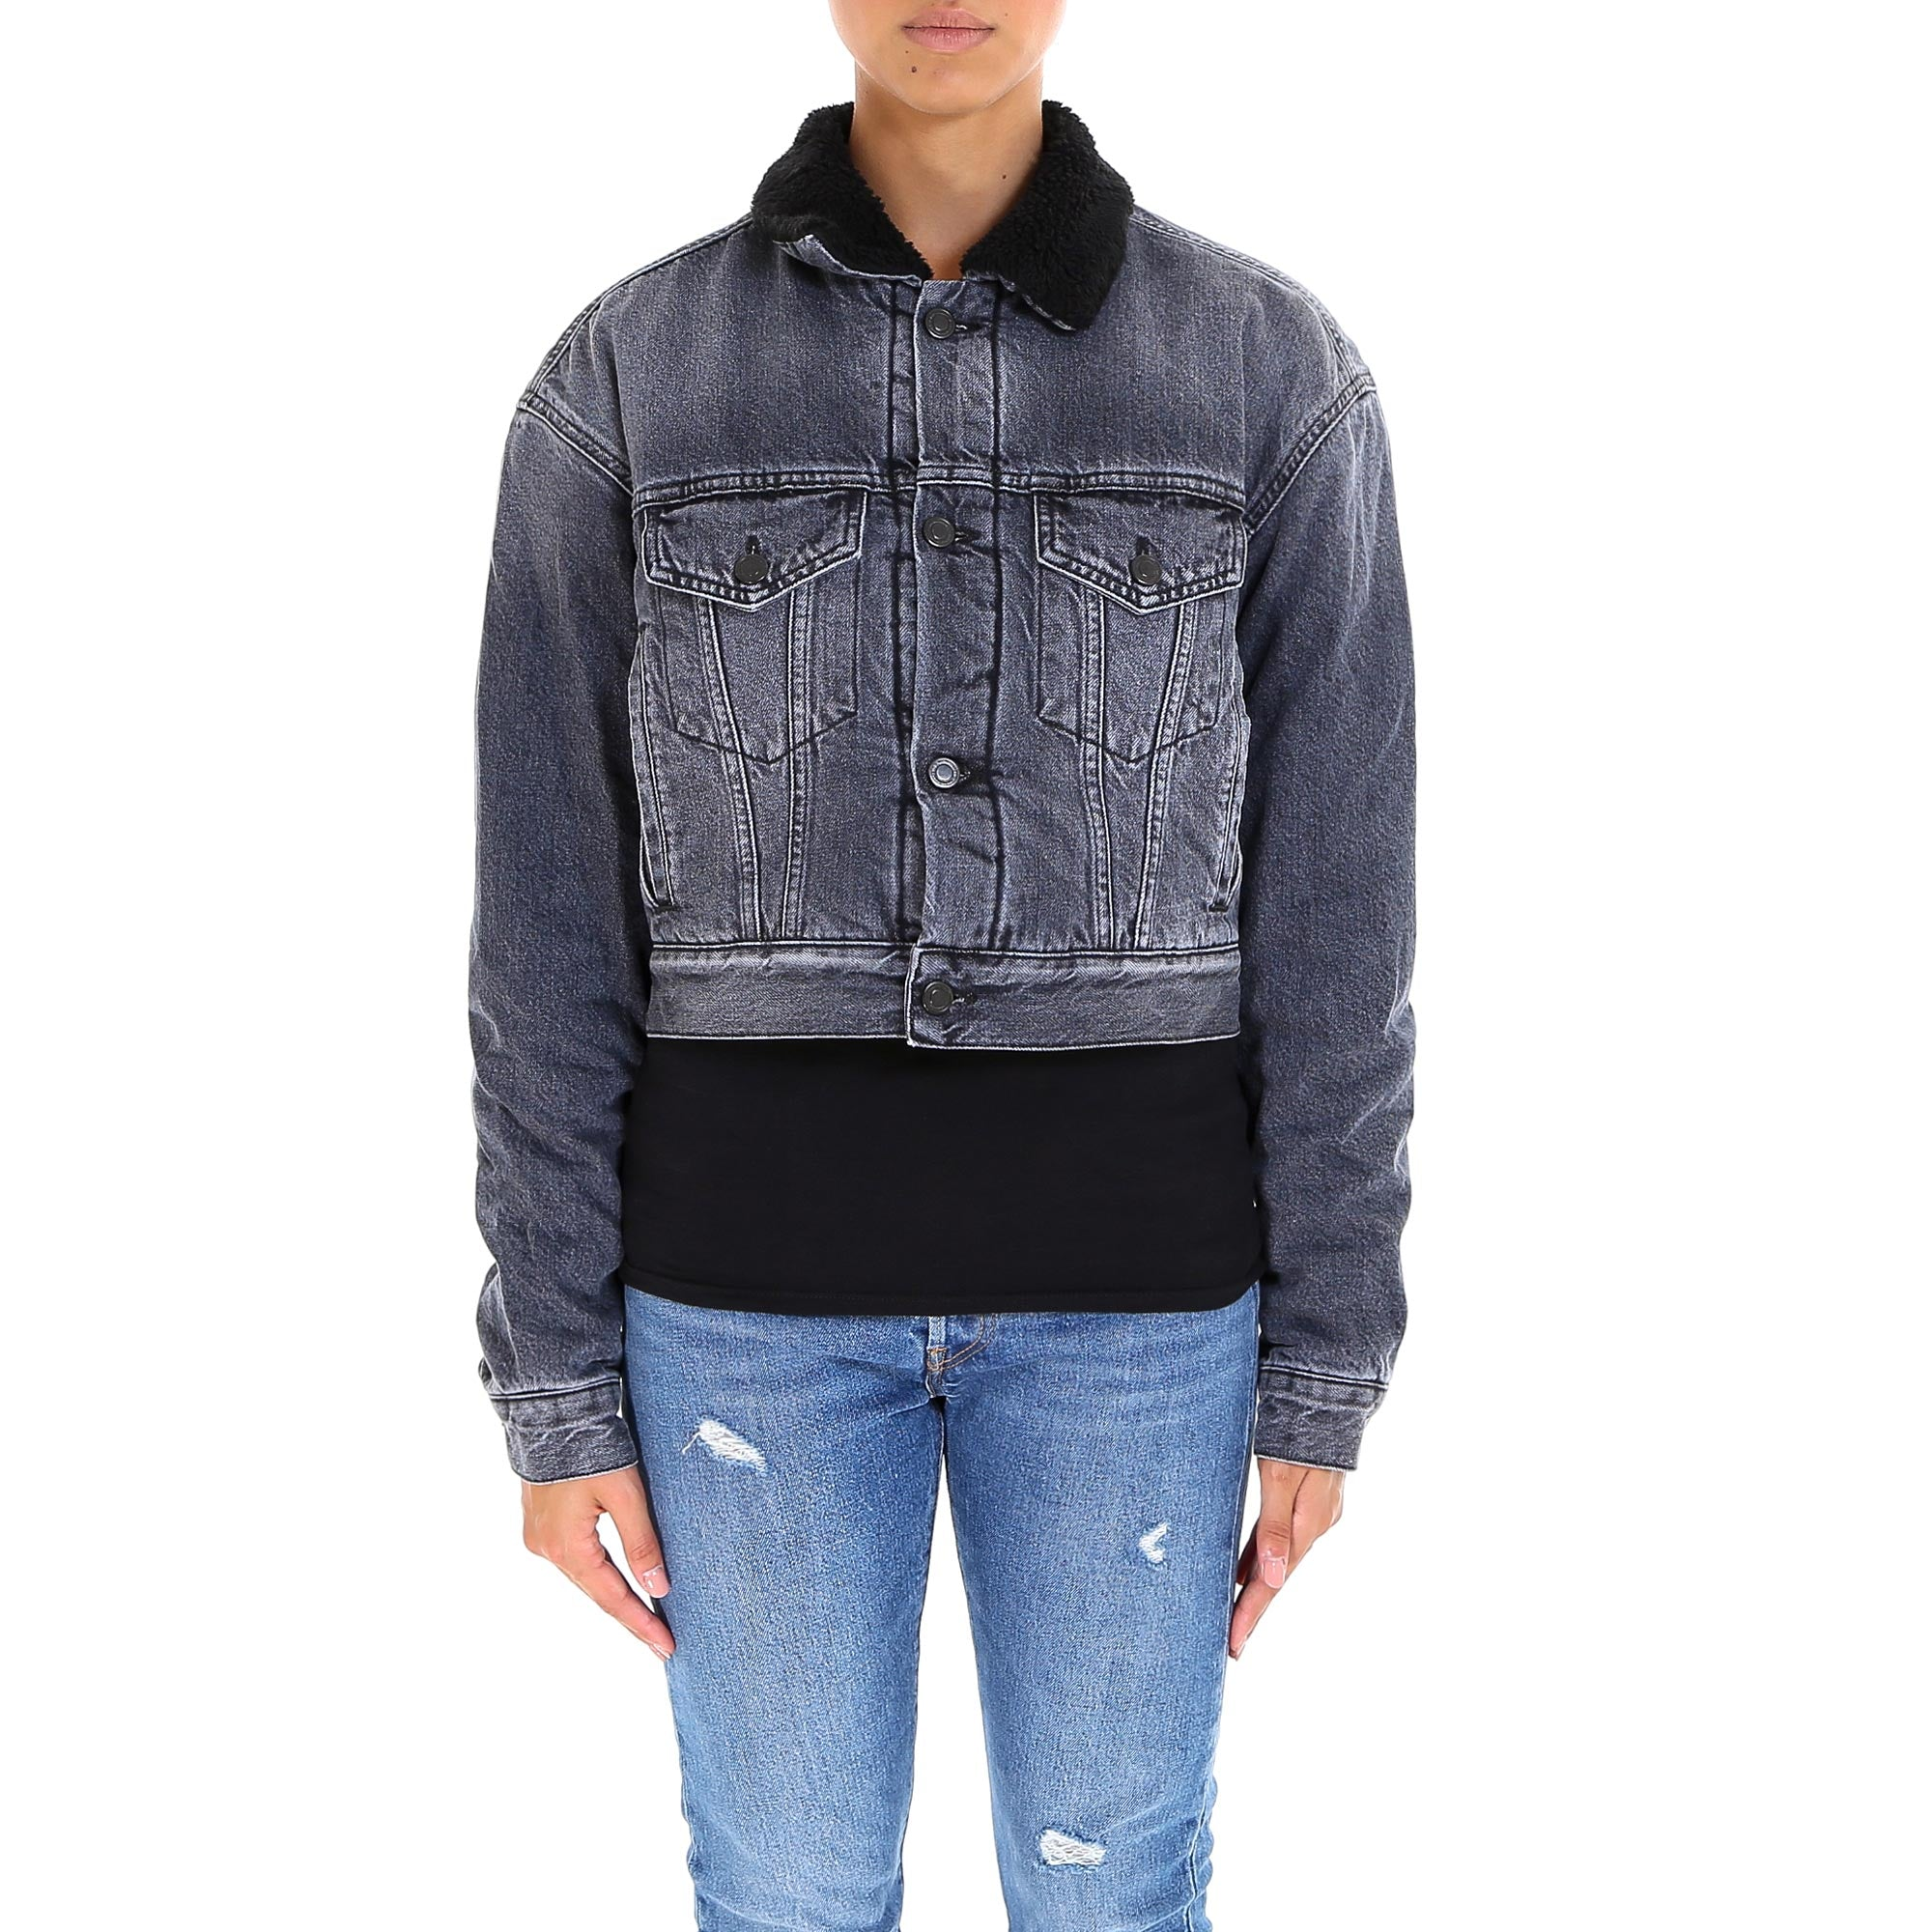 Marcelo Burlon County Of Milan MARCELO BURLON COUNTY OF MILAN EMBROIDERED DESIGN FUR DENIM JACKET